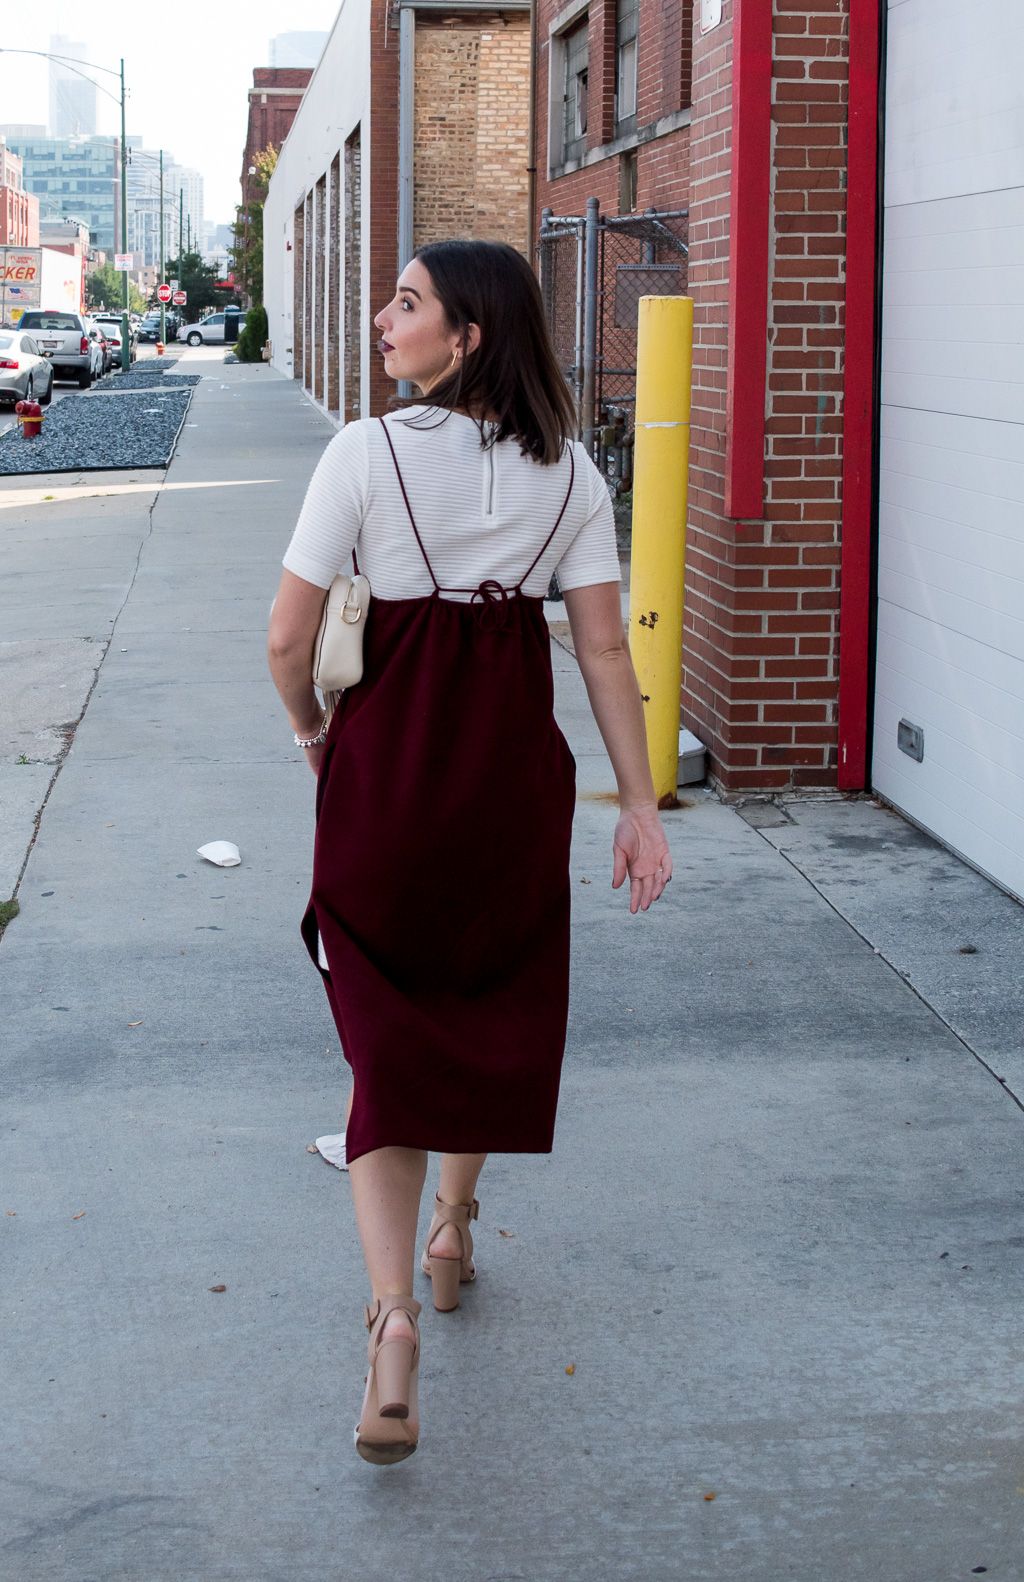 Creative Layering Fashion for Fall | Martel Burgundy Velvet Slip Dress, H&M White Ribbed Dress, KC Jagger Nude Cross Body Bag, Lori's Shoes Armitage Avenue Furry Key Chain, and Zara Nude & White Block Chunky Heeled Sandals